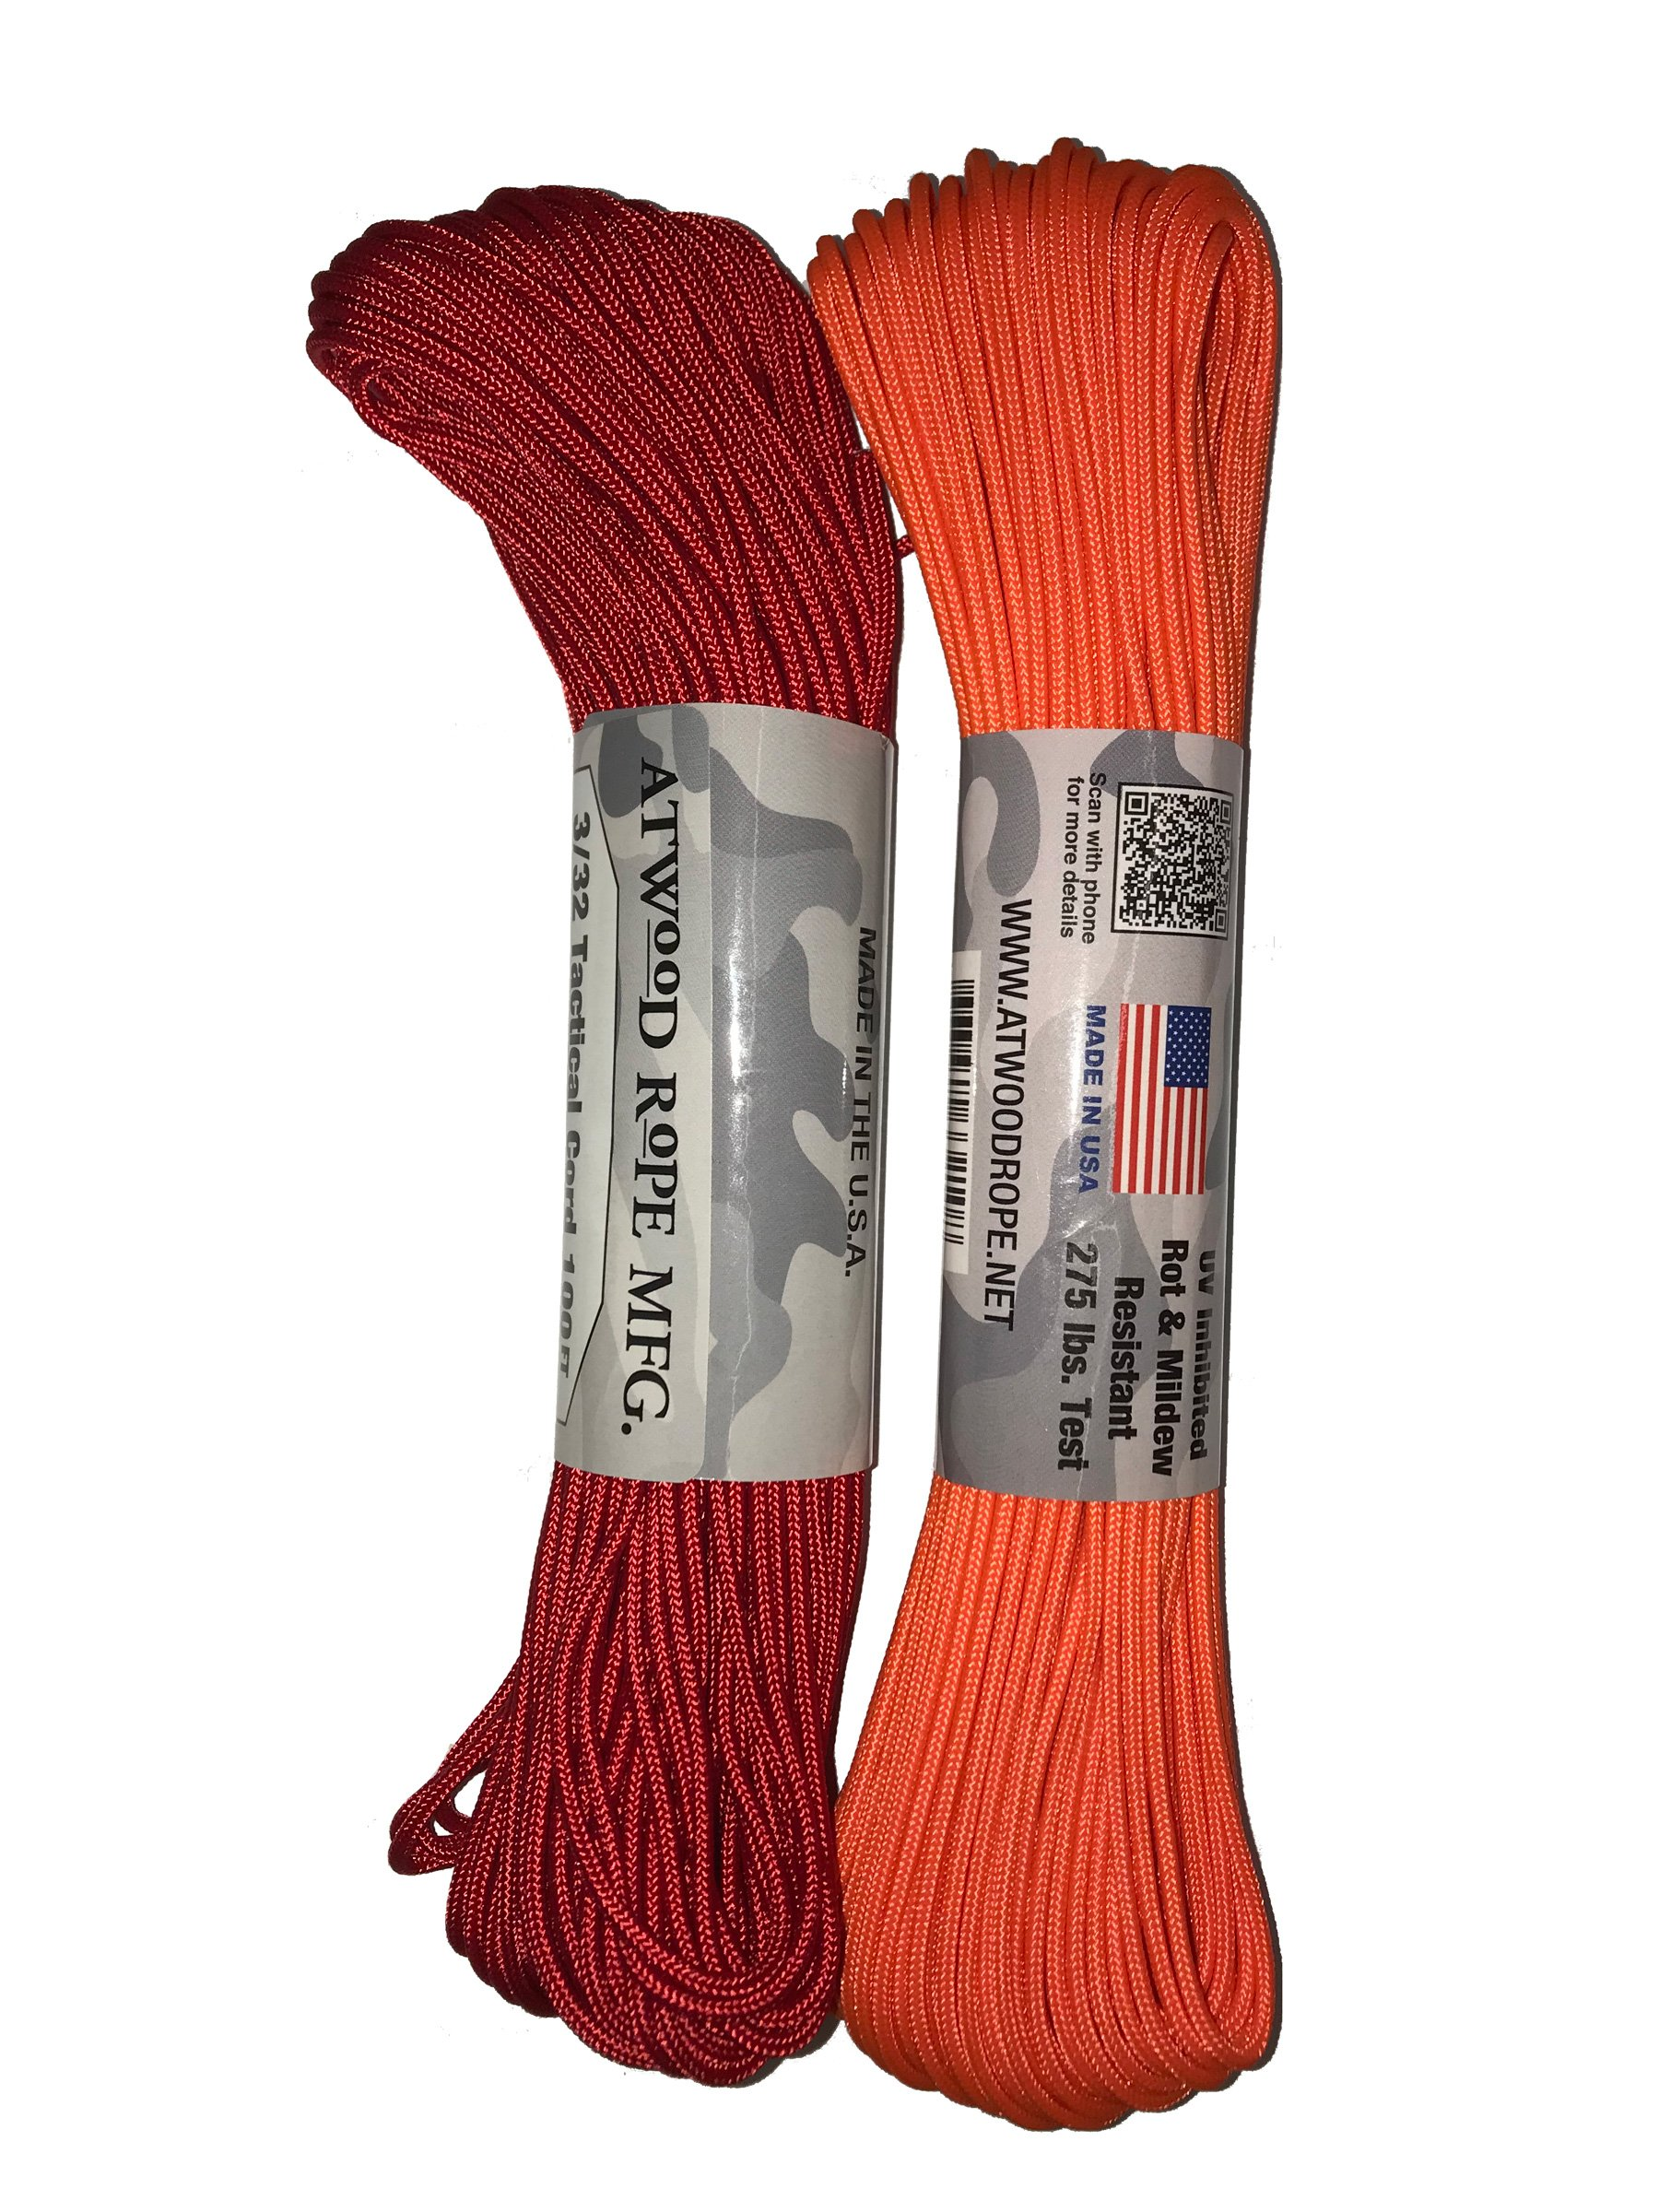 Atwood Mobile Products Paracord 3/32 Tactical Cord 4 Nylon Strand Core 275 Test Weight… (Neon Orange/Red Combo Pack (2 Pack))